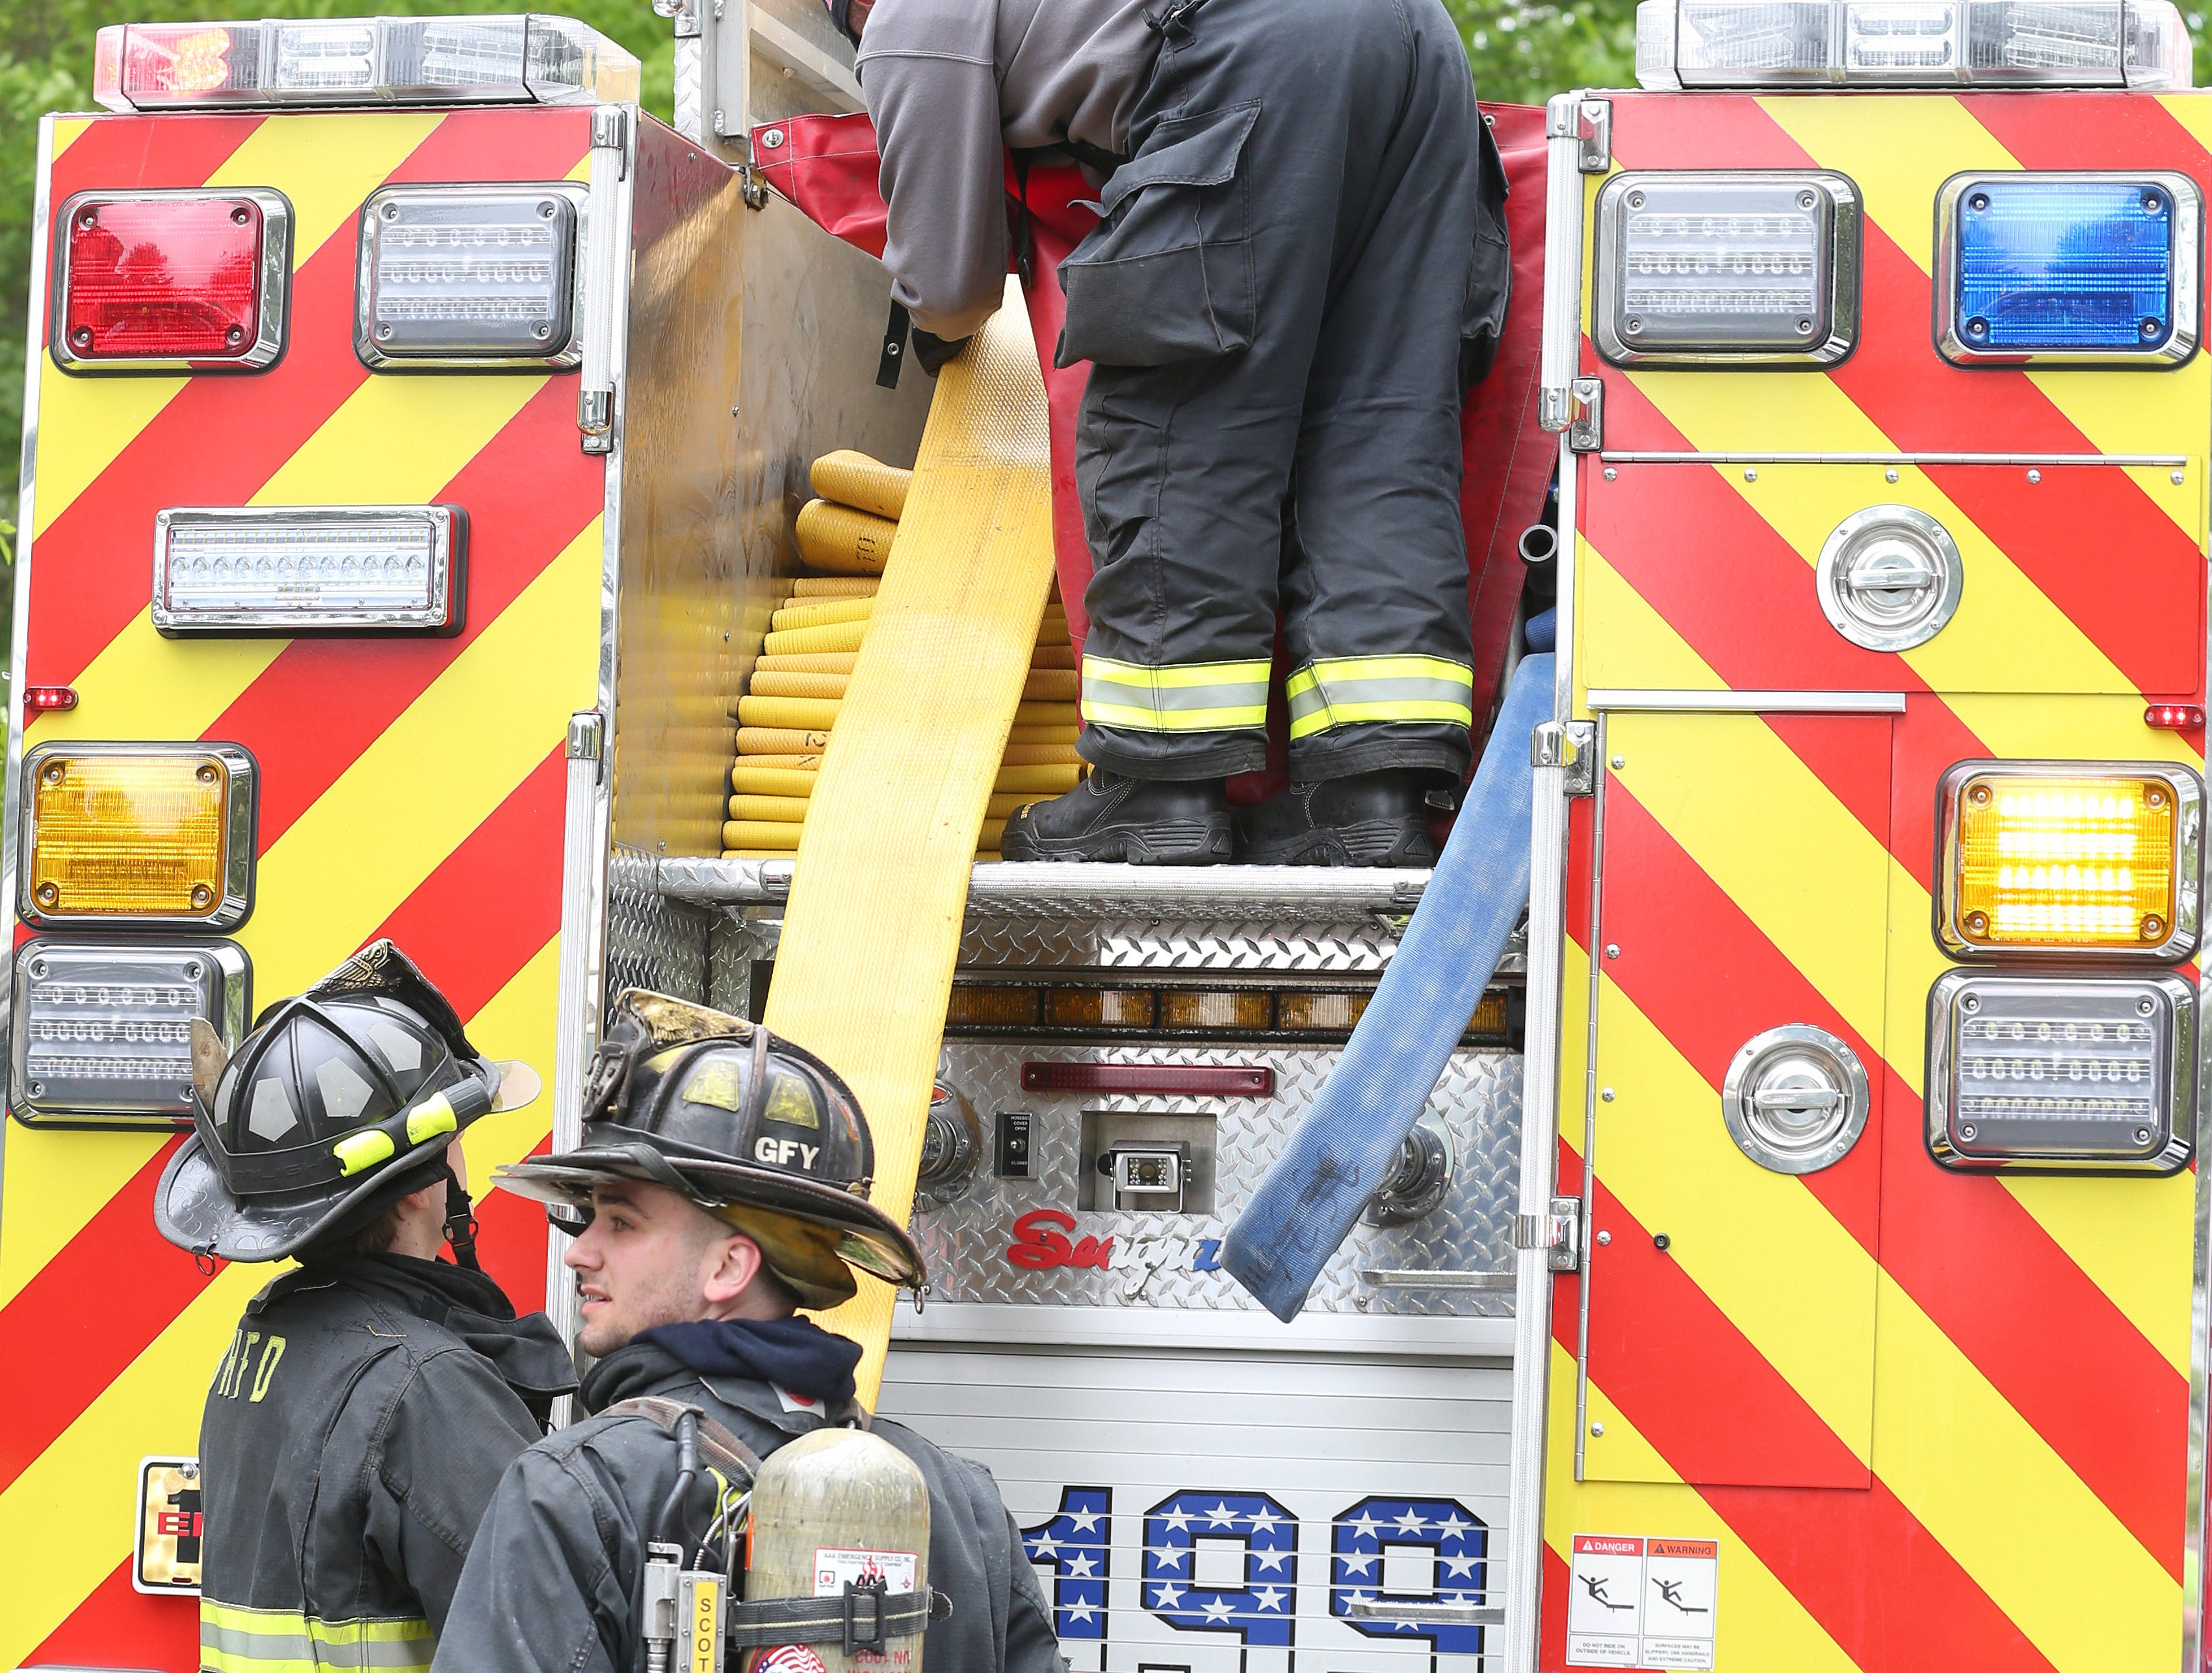 Bedford Hills firefighters quickly extinguished a fire in an apartment on Rome Avenue in Bedford Hills May 9, 2019. Firefighters from Katonah, Mt. Kisco assisted at the scene.